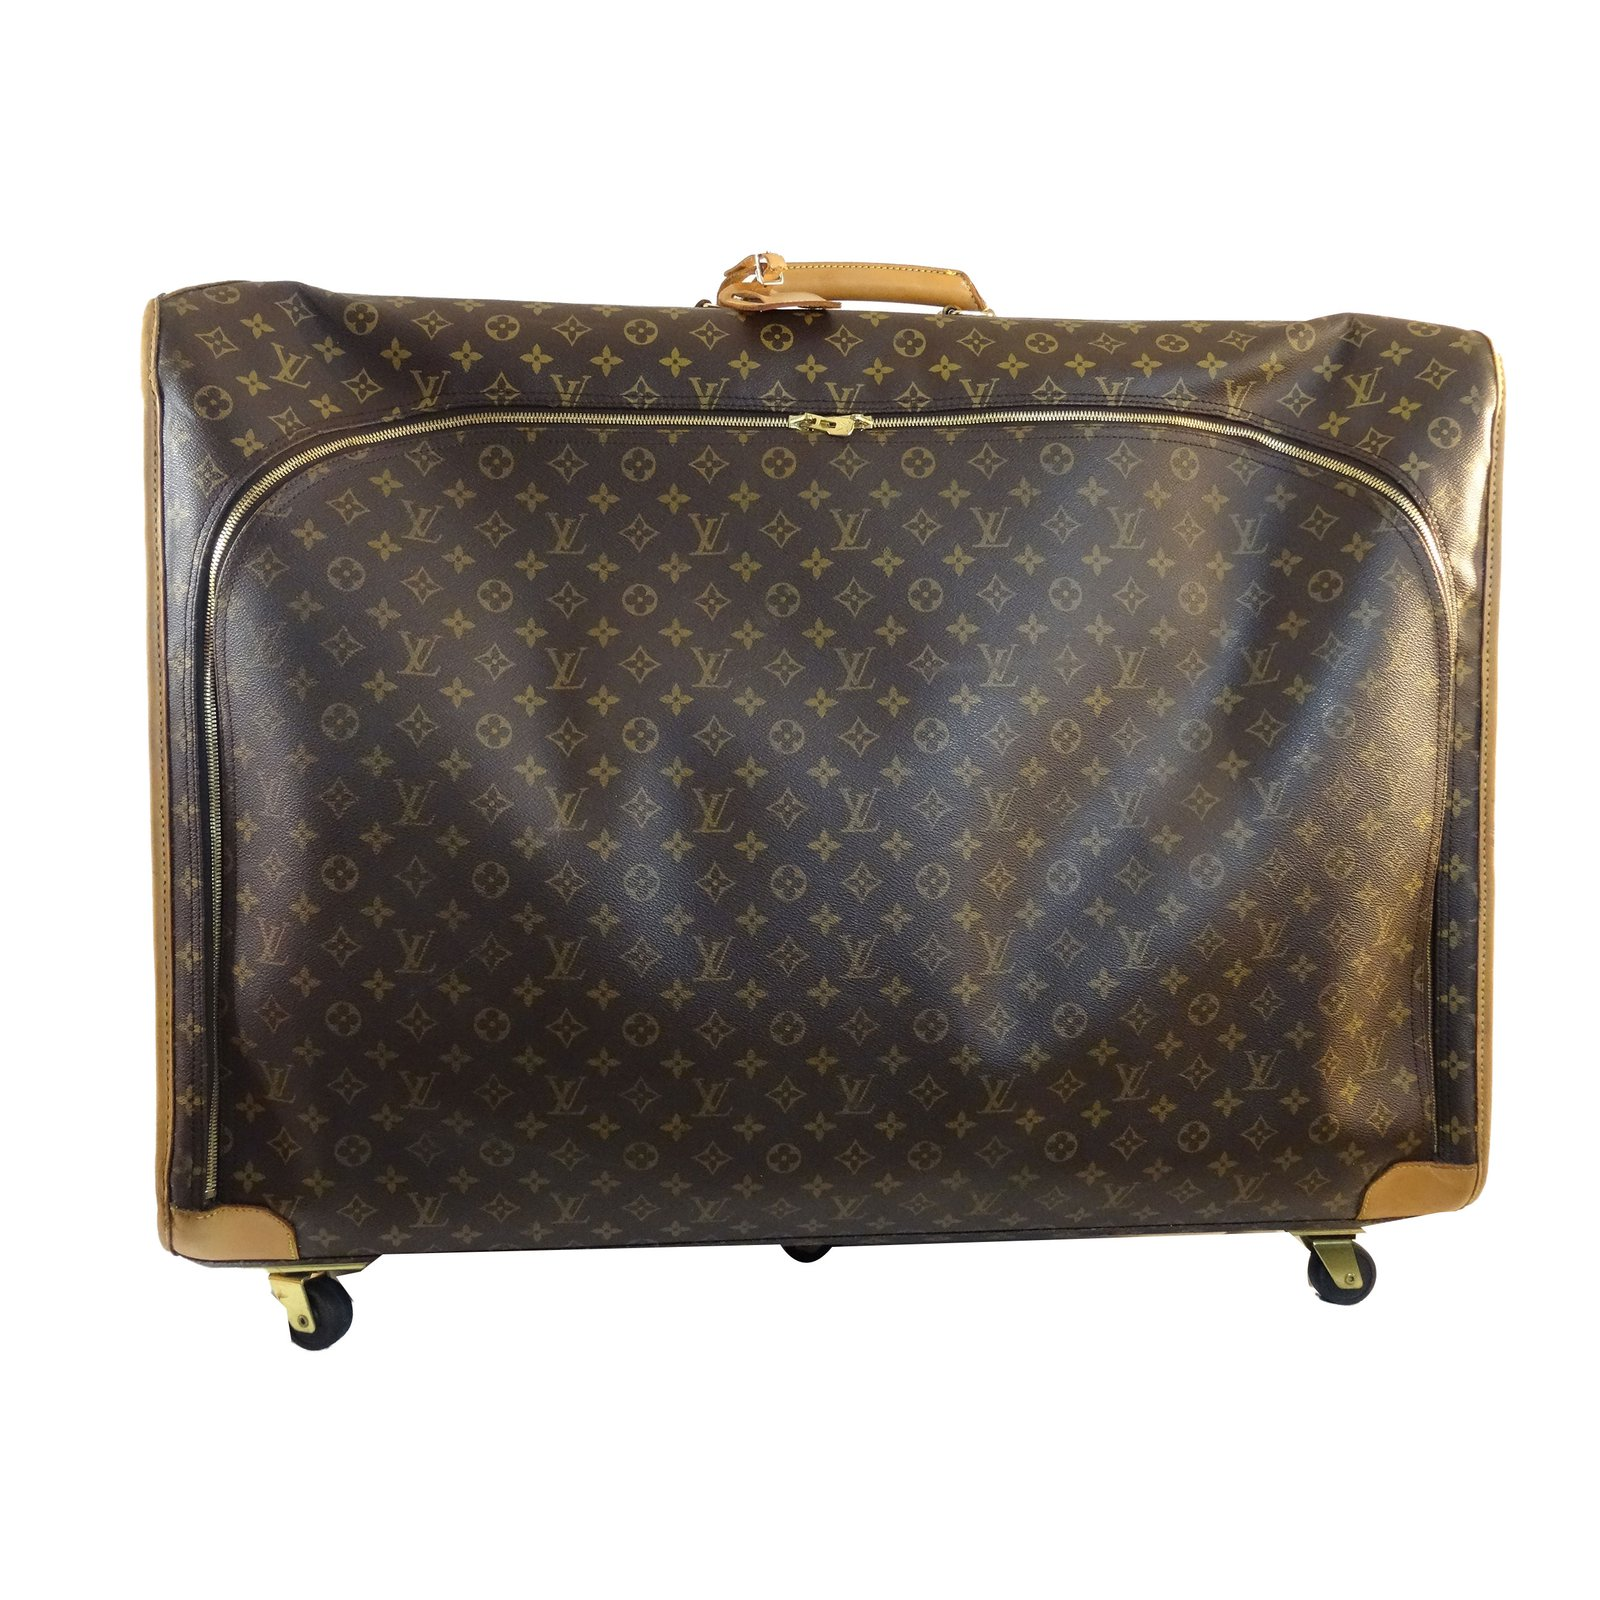 Sacs de voyage louis vuitton valise xxxl vuitton cuir for Graine d interieur paris